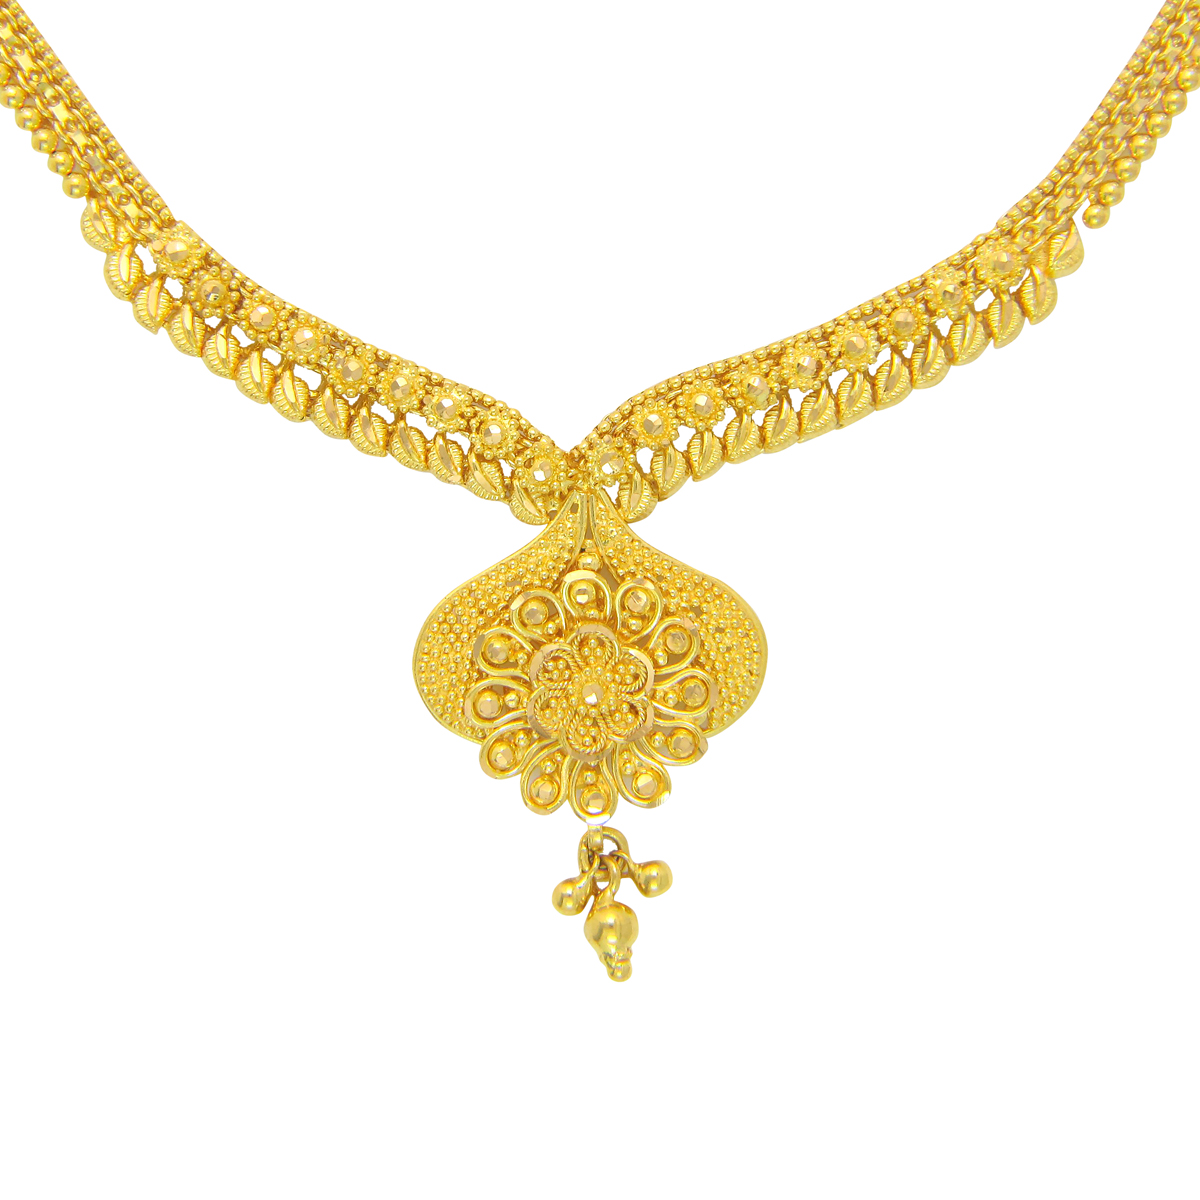 Popley 22Kt Gold Bandhan Necklace